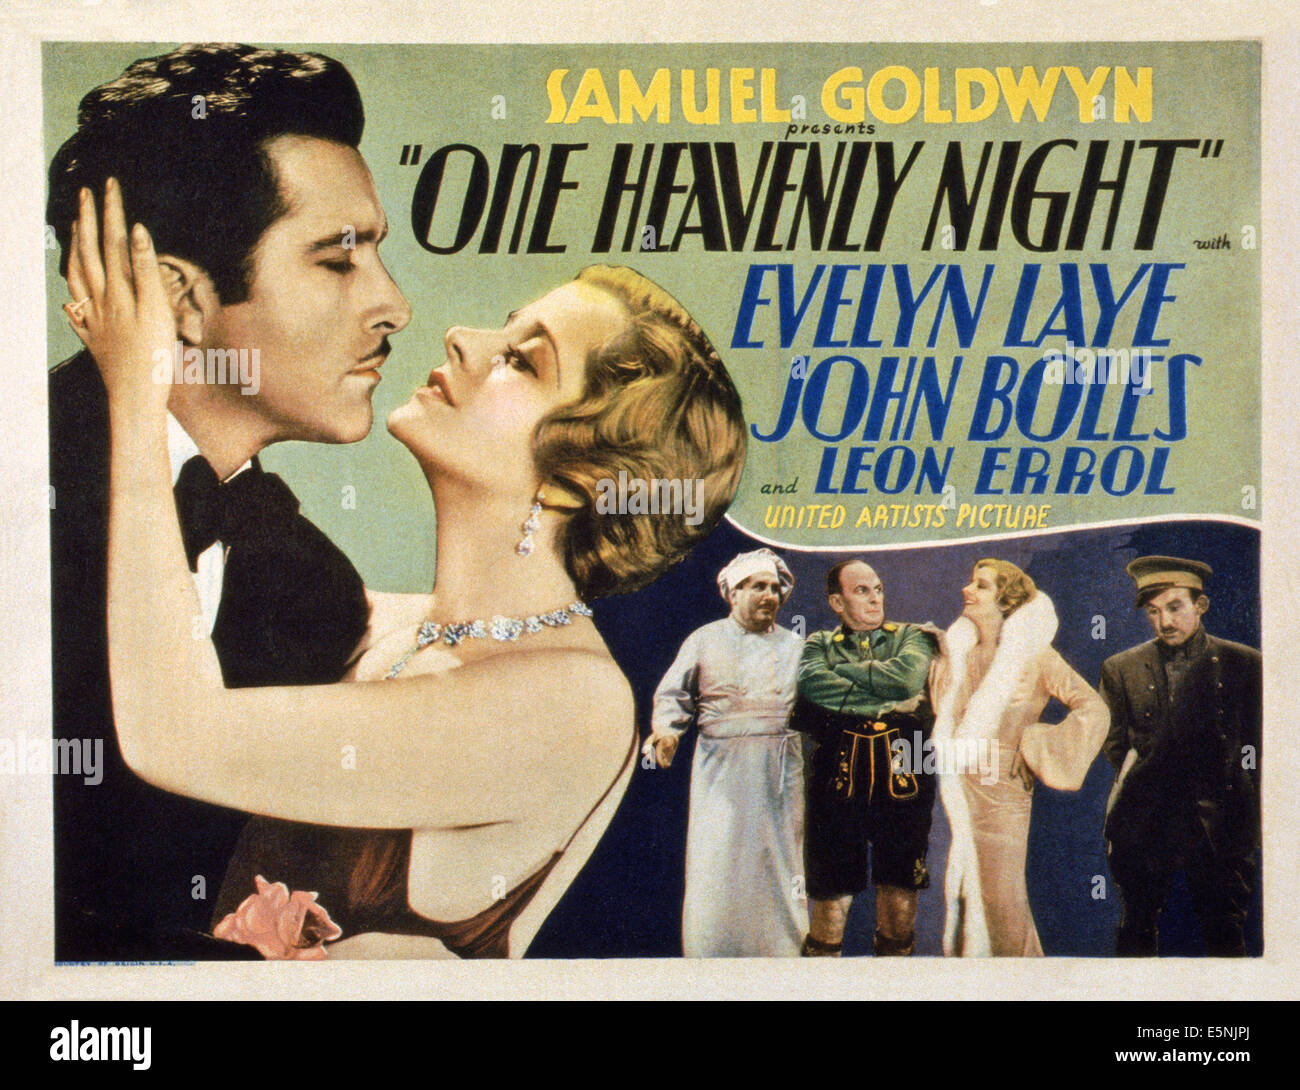 ONE HEAVENLY NIGHT, US lobbycard, John Boles (left), Evelyn Laye (second left)), Leon Errol (third right), 1931 - Stock Image